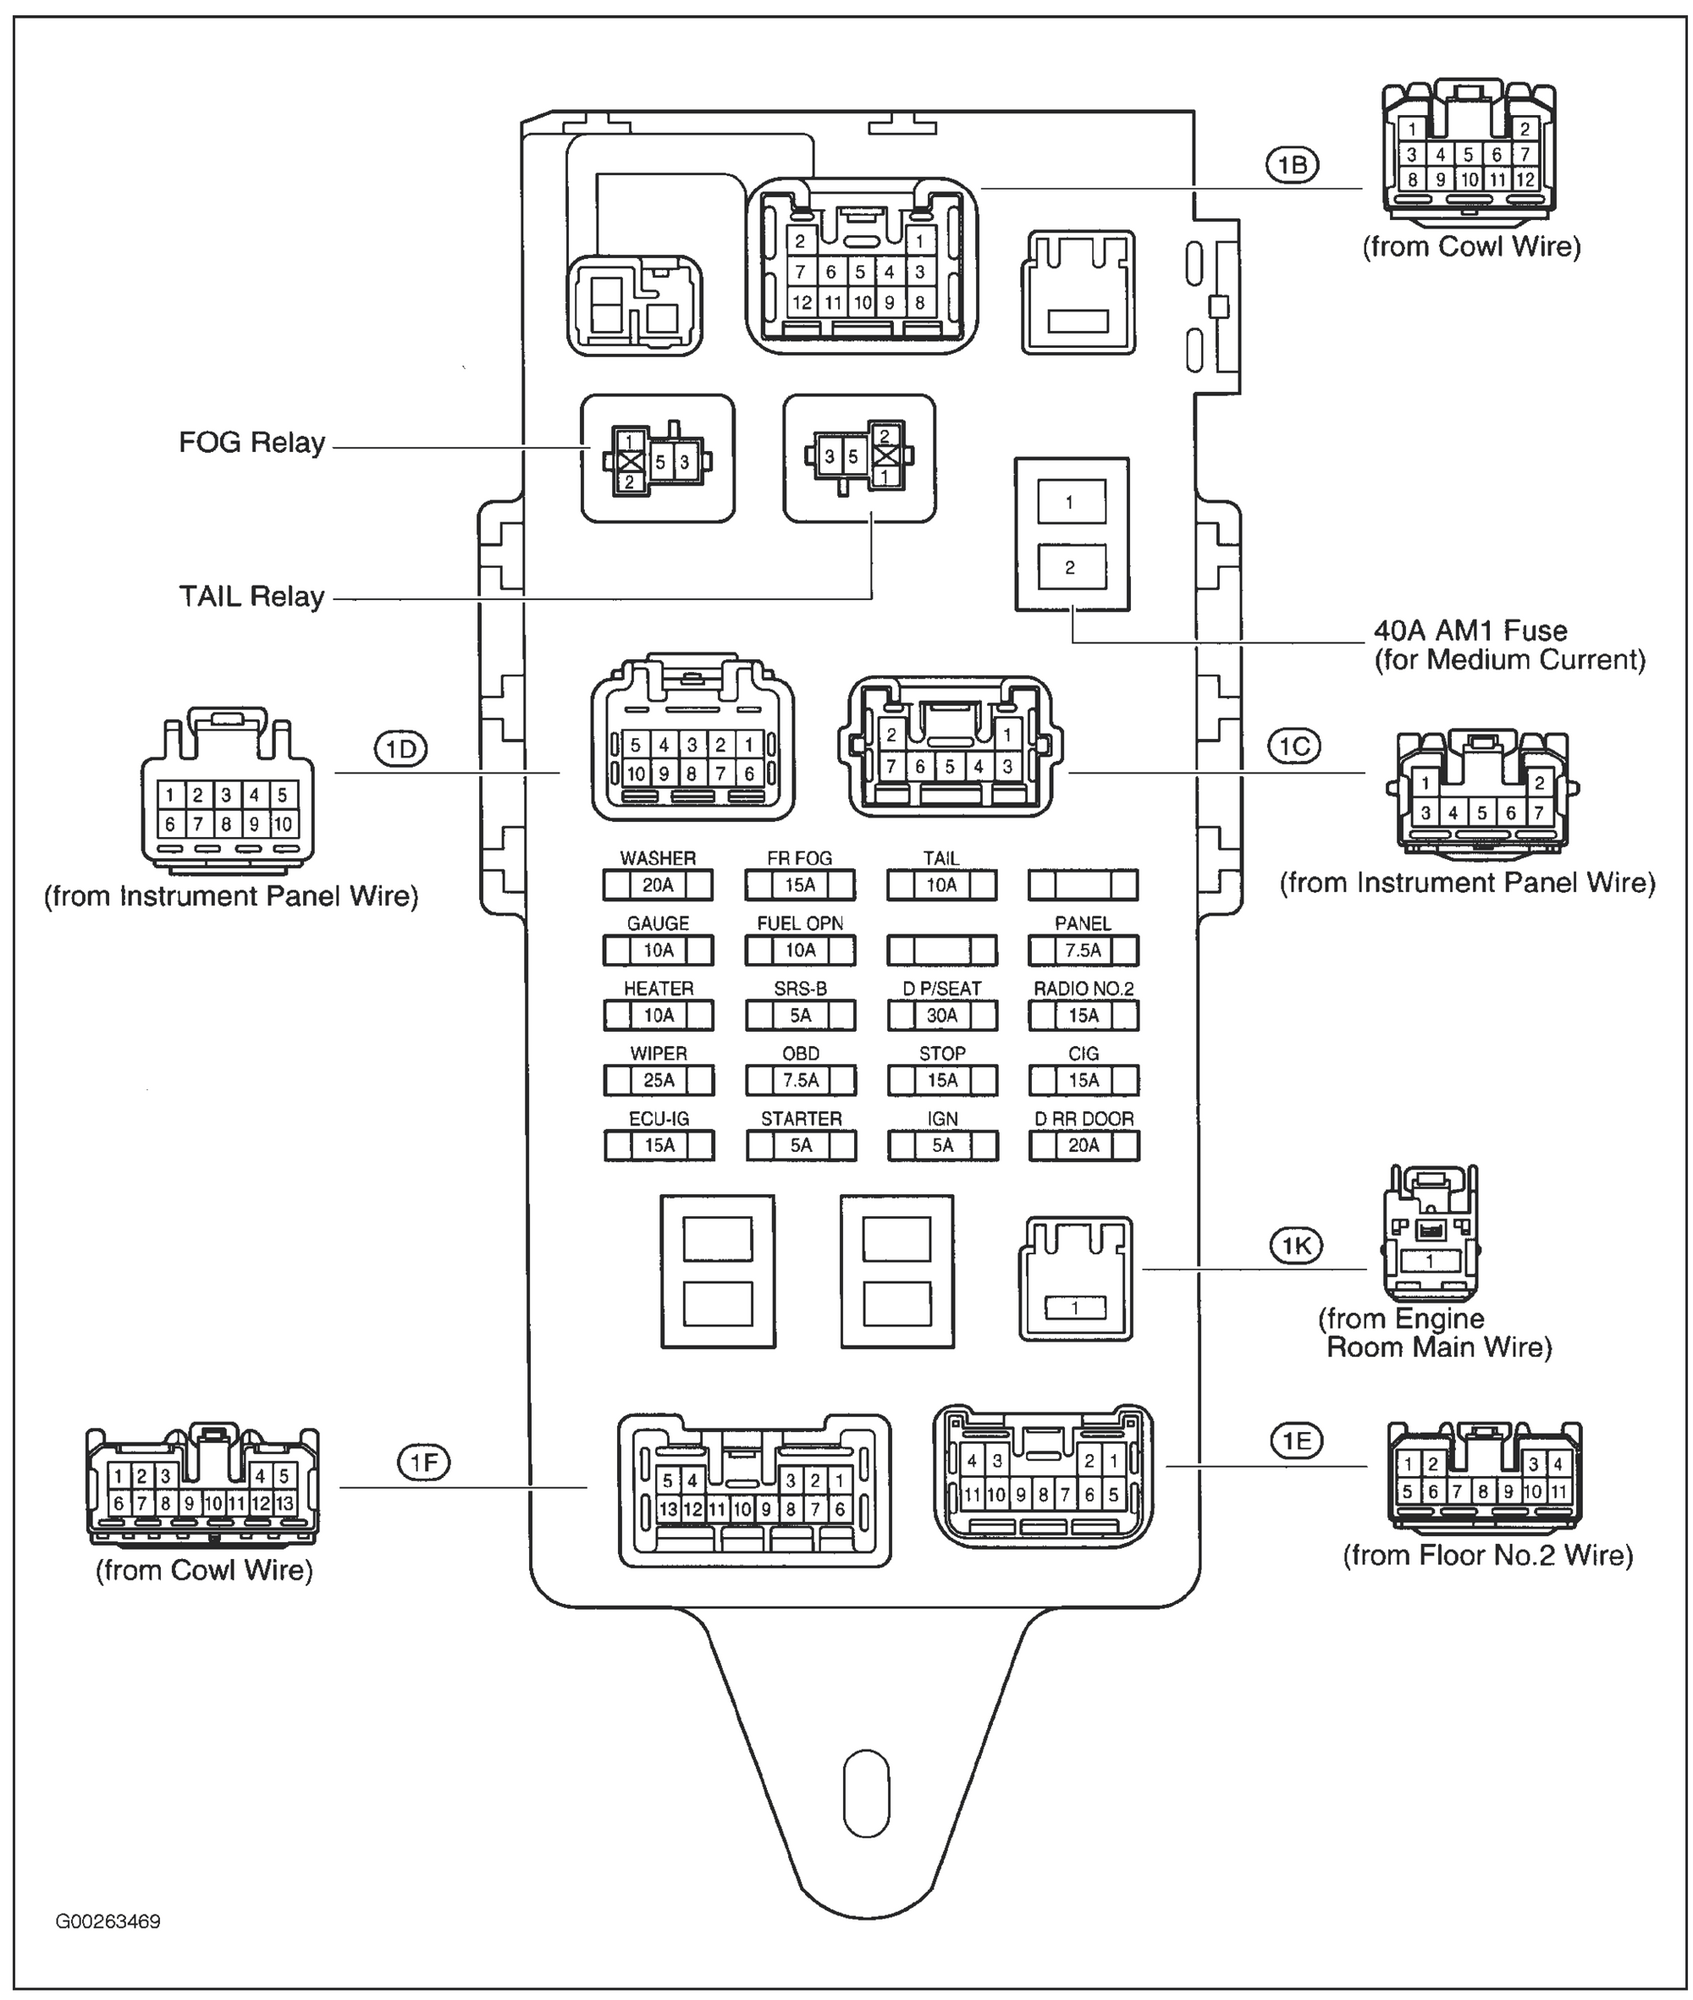 2000 Lexus Gs300 Fuse Box - 1993 Ford Explorer Sport Fuse Box Diagram for  Wiring Diagram Schematics | 99 Lexus Gs300 Fuse Box Diagram |  | Wiring Diagram Schematics